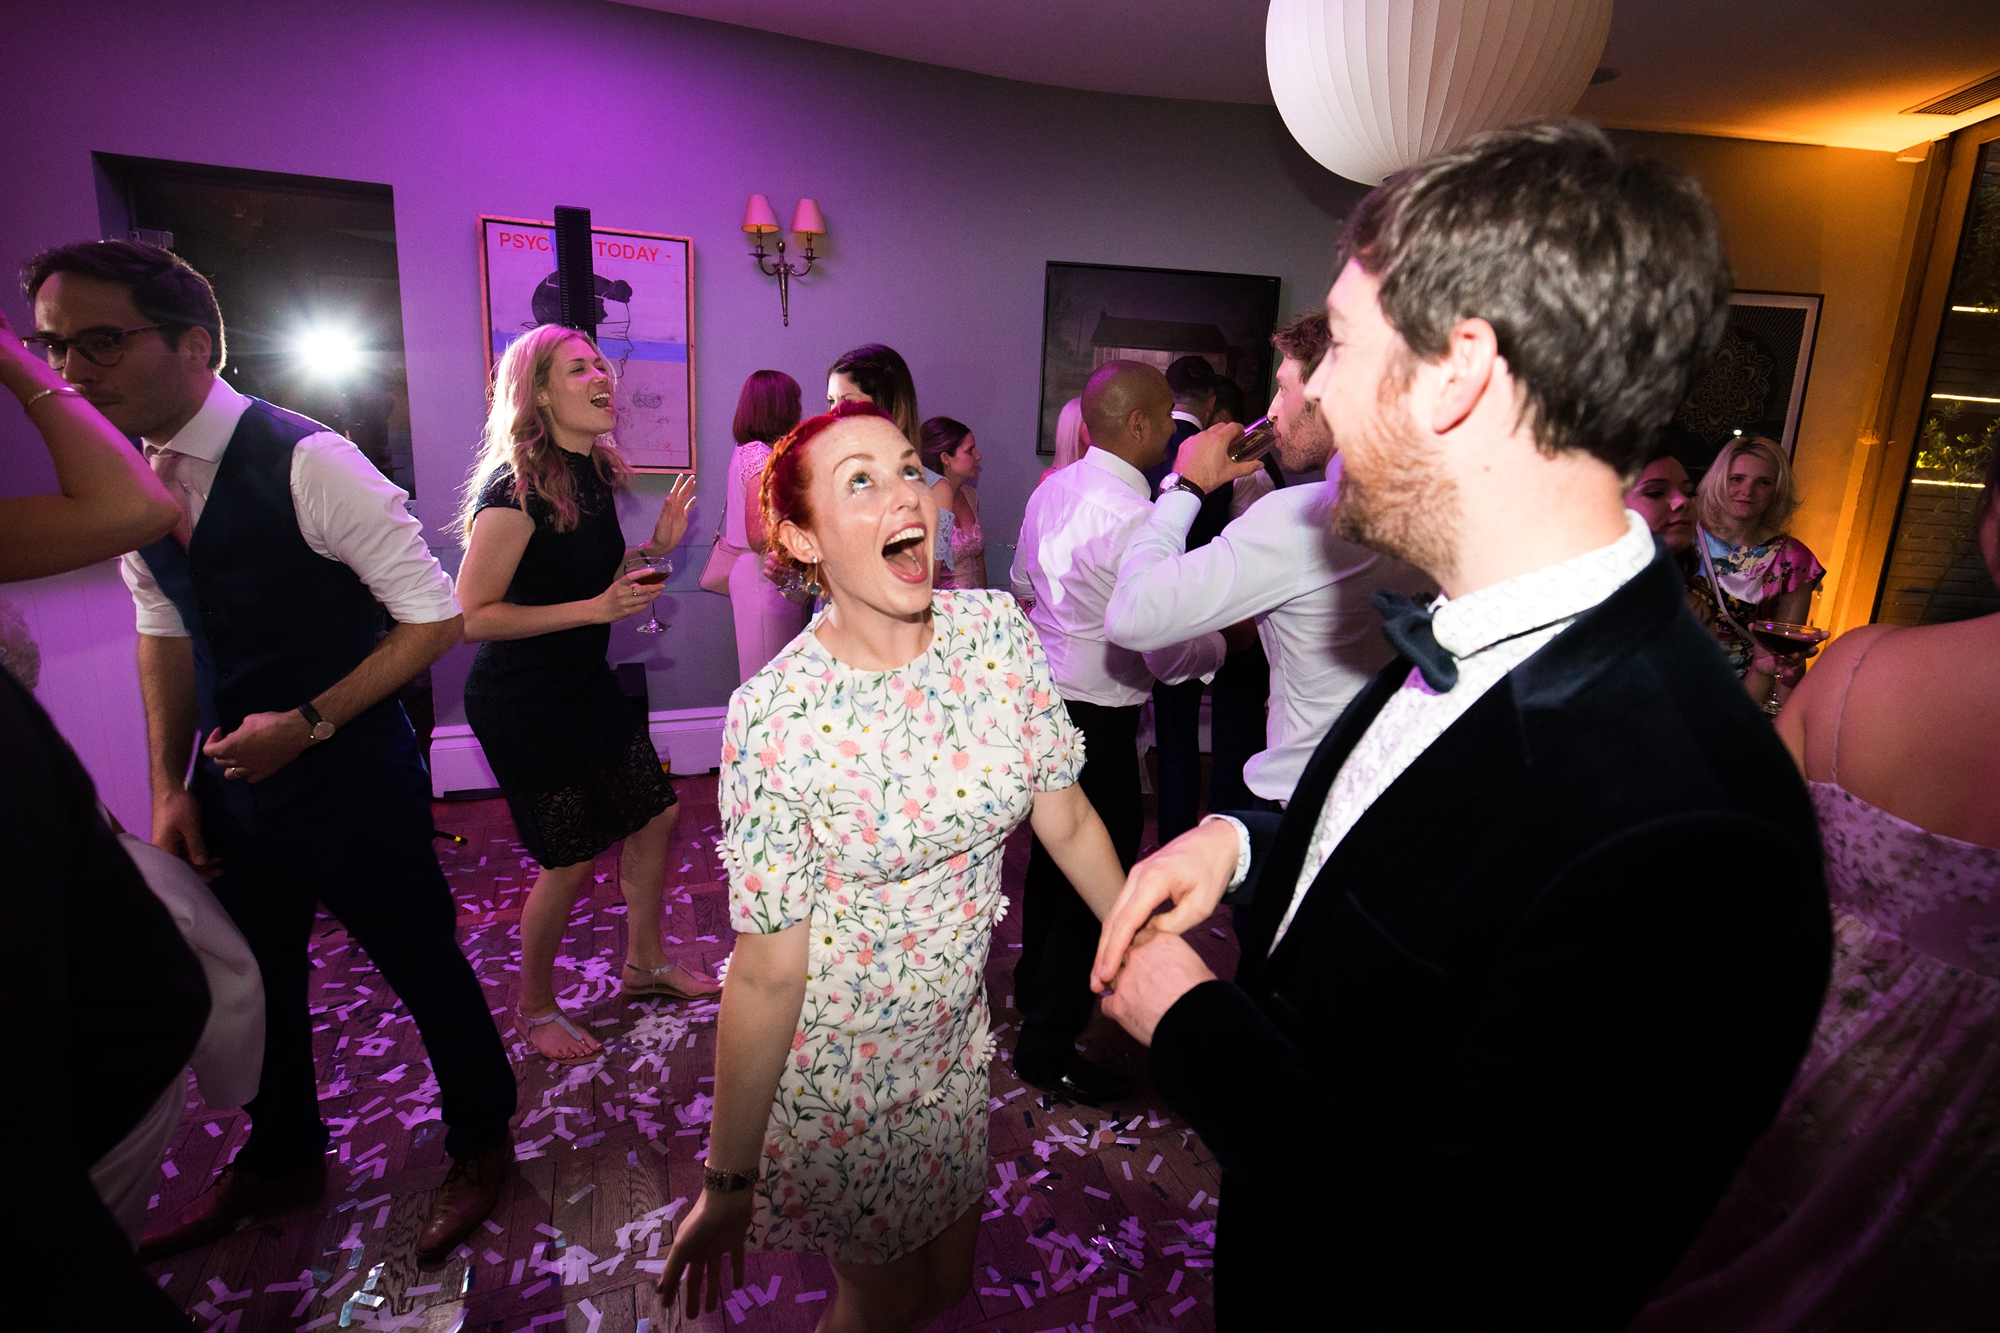 York & Albany Wedding Photography dancing party photo